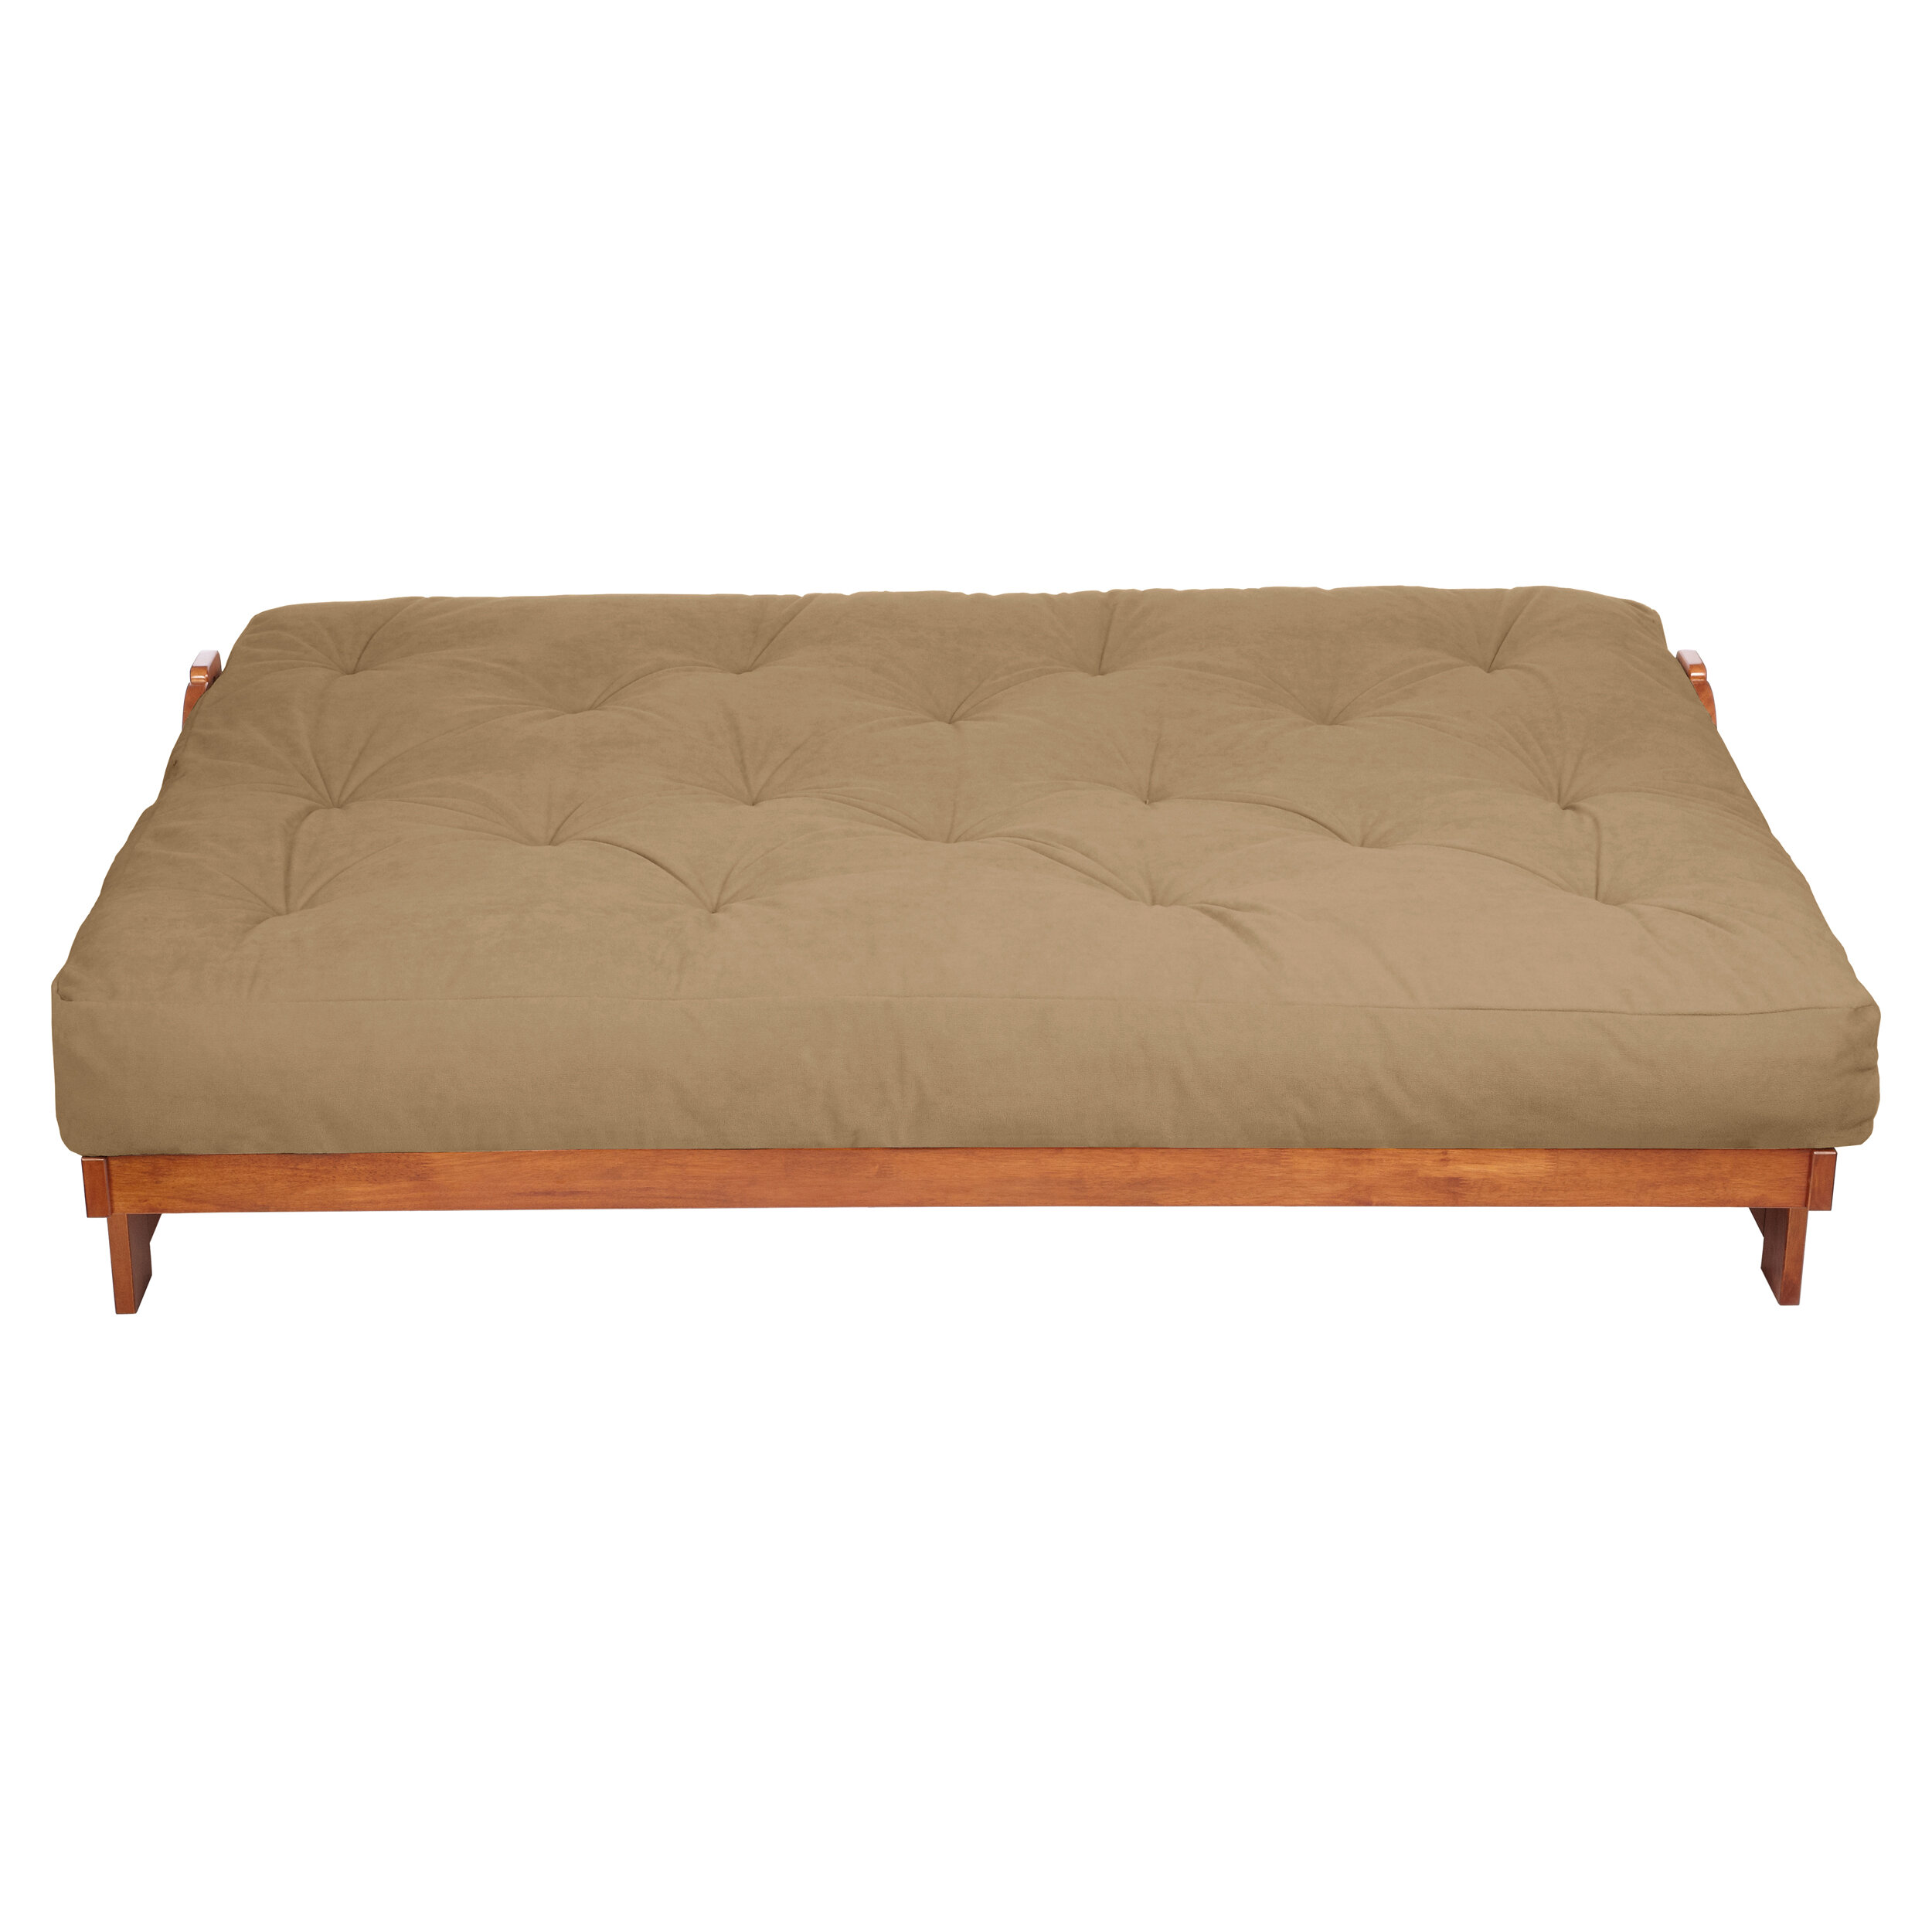 replacement buy me ideal near milioanedeprieteni futons futon mattress